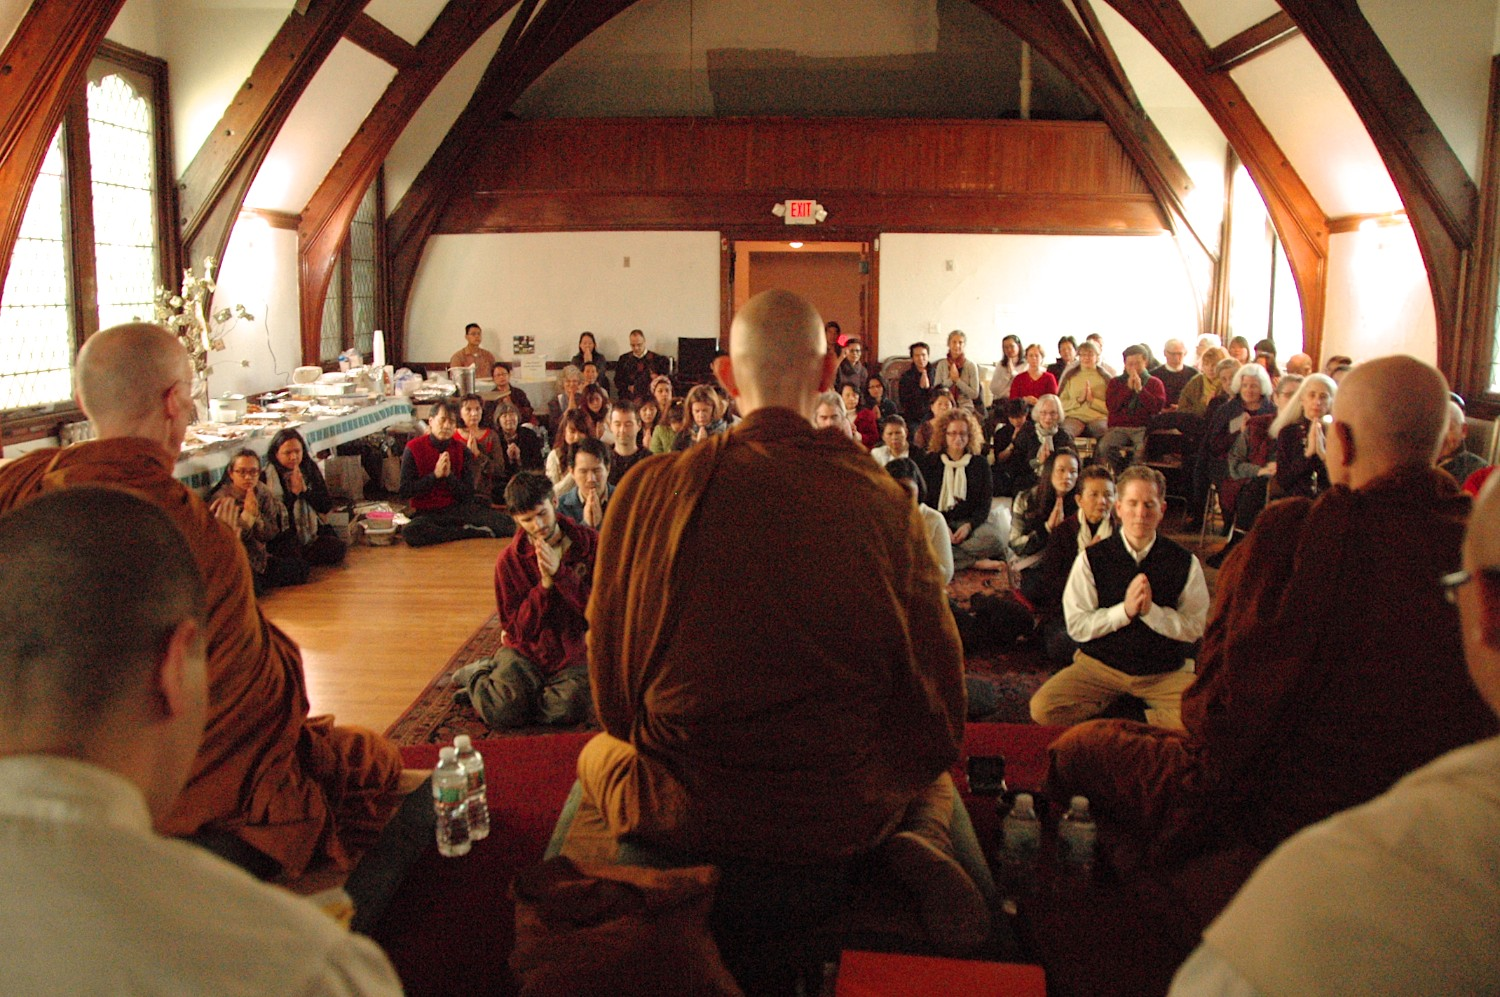 Pa Bah Offering Ceremony in Allston, Oct. 27